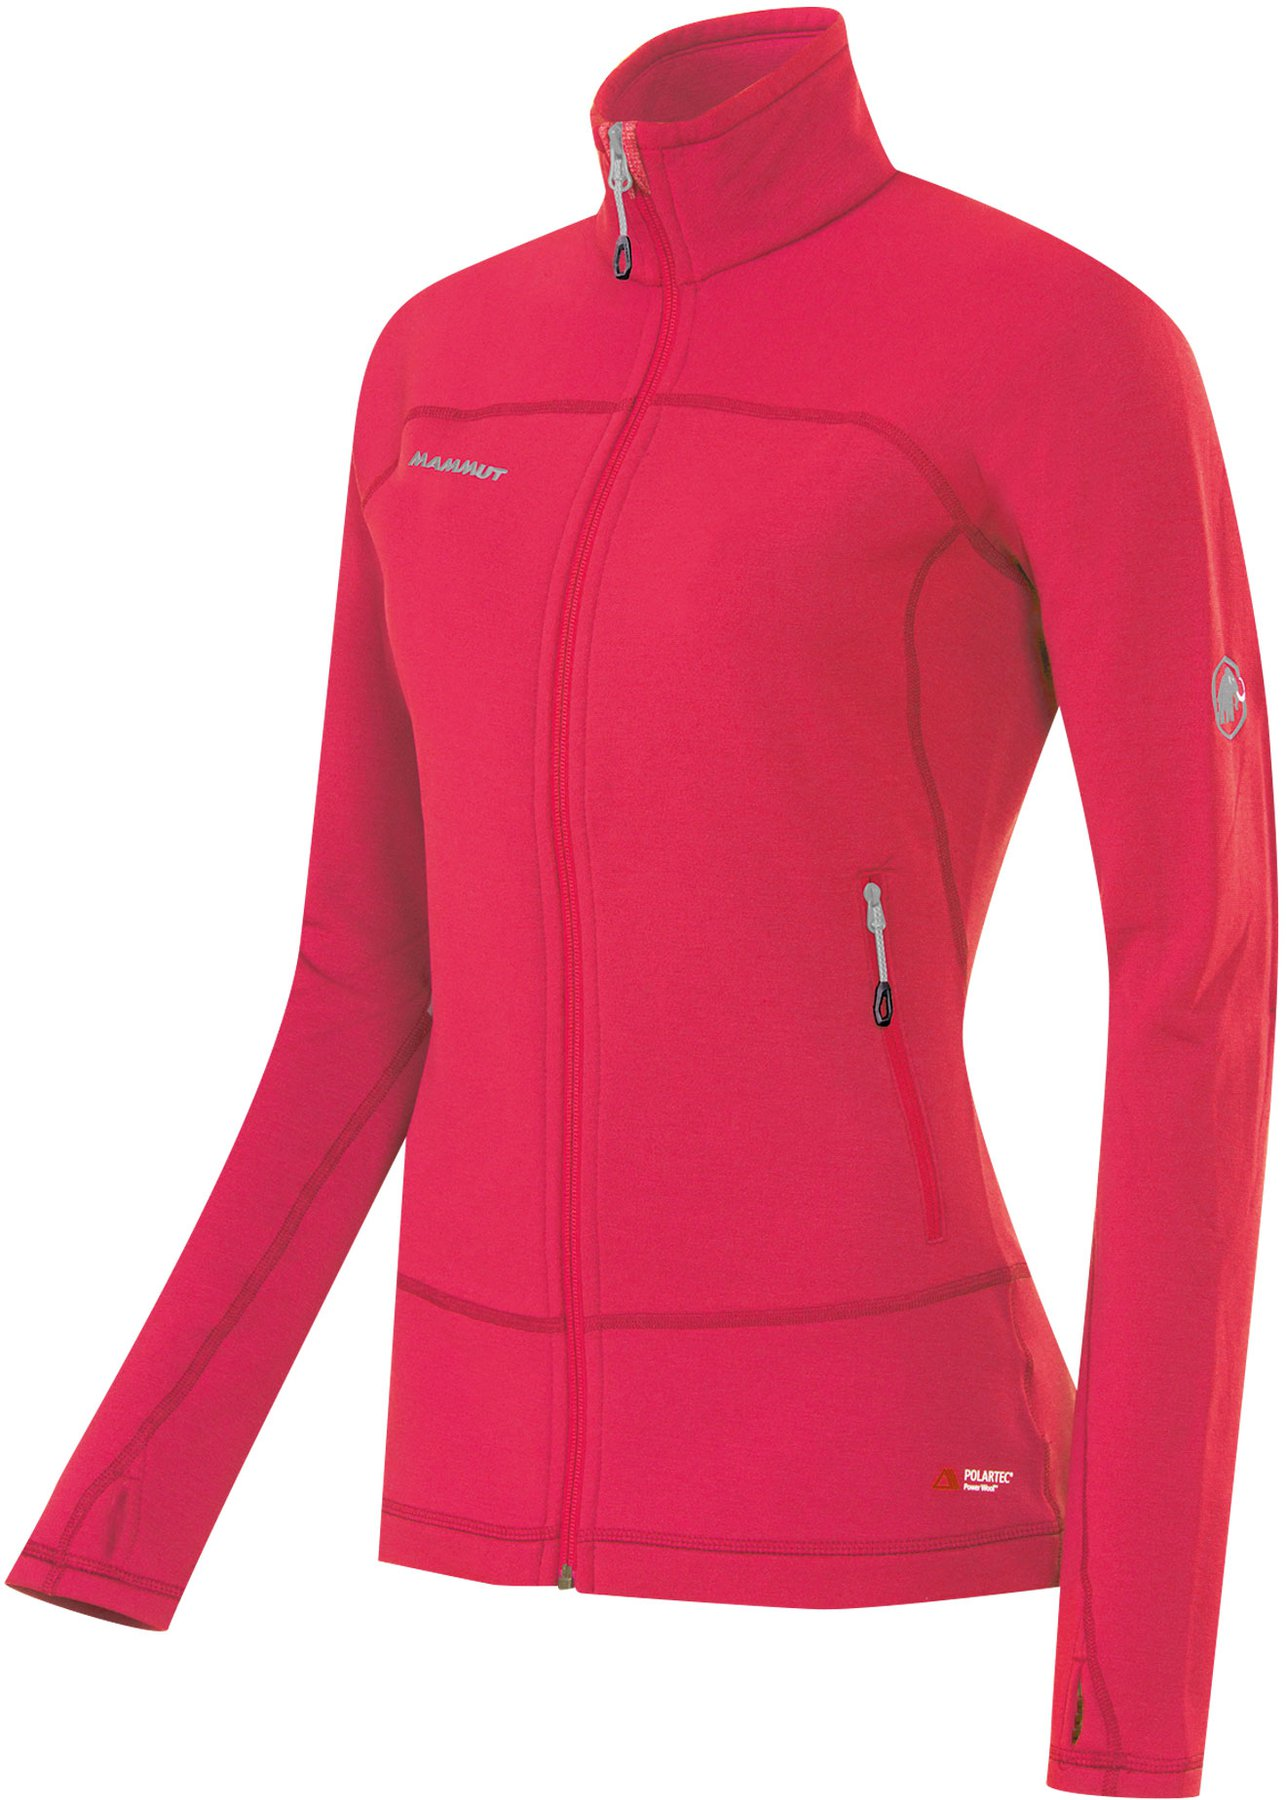 timeless design 70457 b21d6 Mammut Fleecejacke Damen